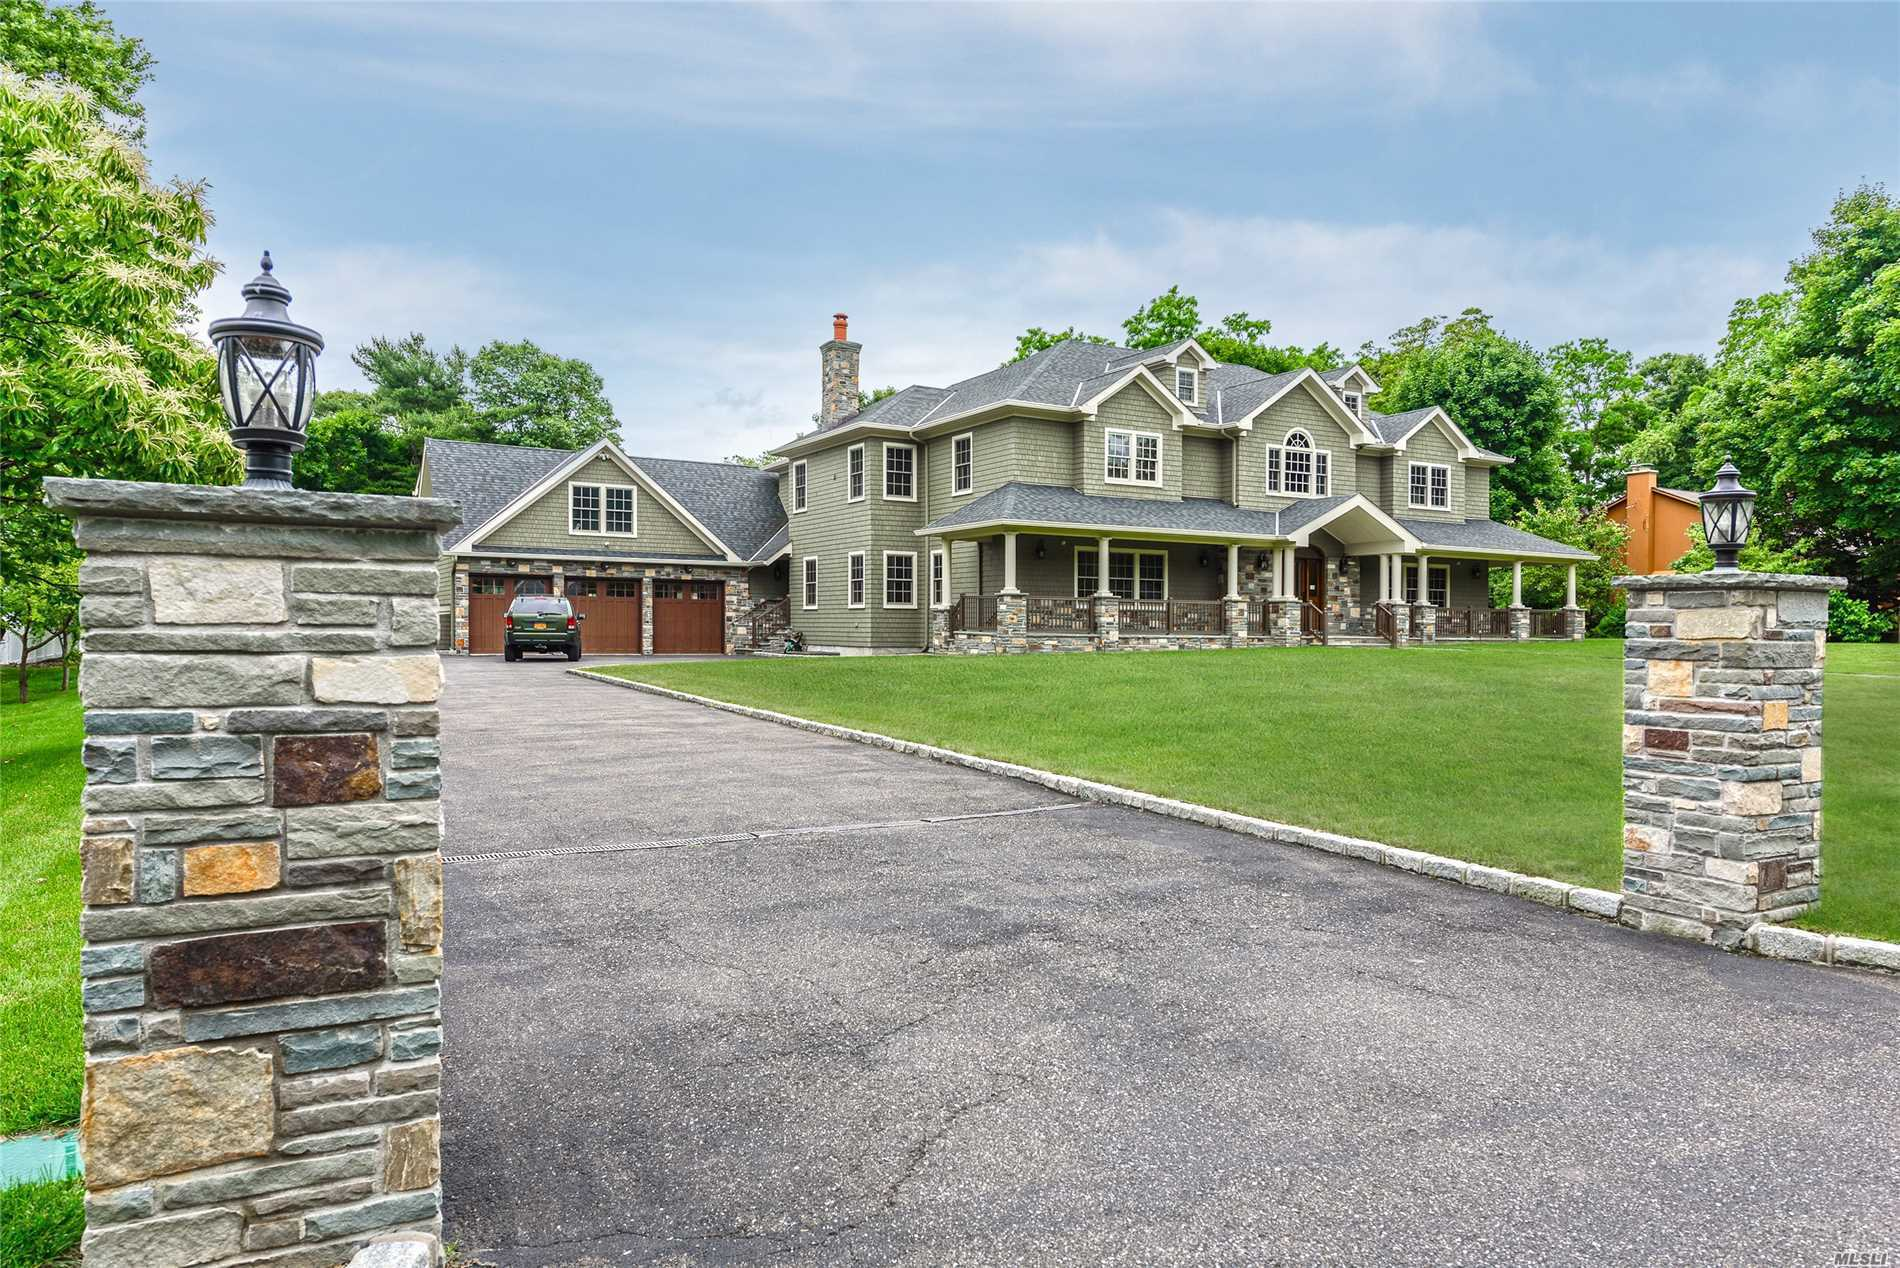 Builder's Own Luxury Home With Flat Acre Plus On Quiet Lane. Features Include Radiant Heat, Large Guest Suite, Master Up Or Downstairs, Large Upper Outside Deck And Three Car Garage. Country Setting Near Beaches, Towns And Train.